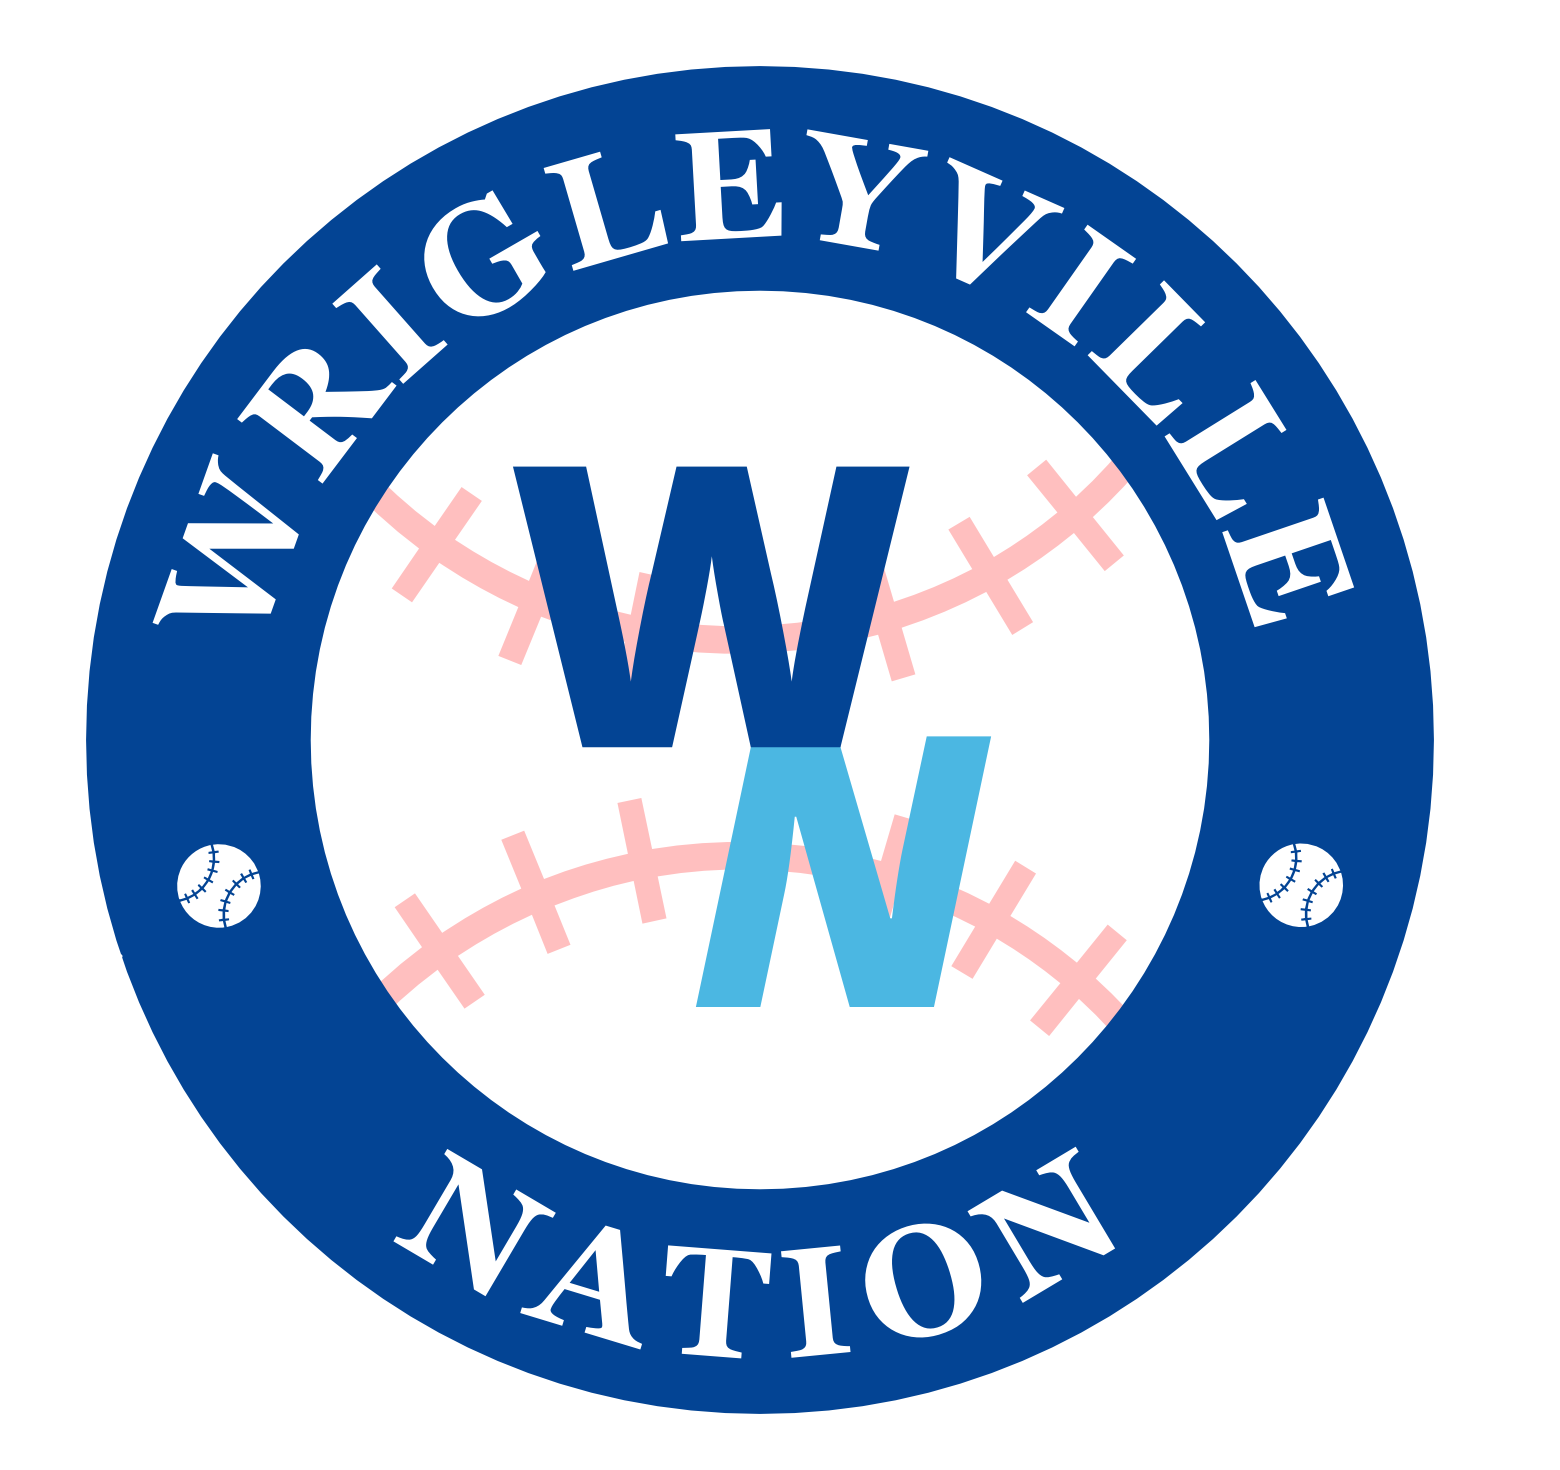 Wrigleyville Nation Ep 207 - Guest: Ryan Davis, Cubs Road Trip, Happ, Injuries, & More  show art